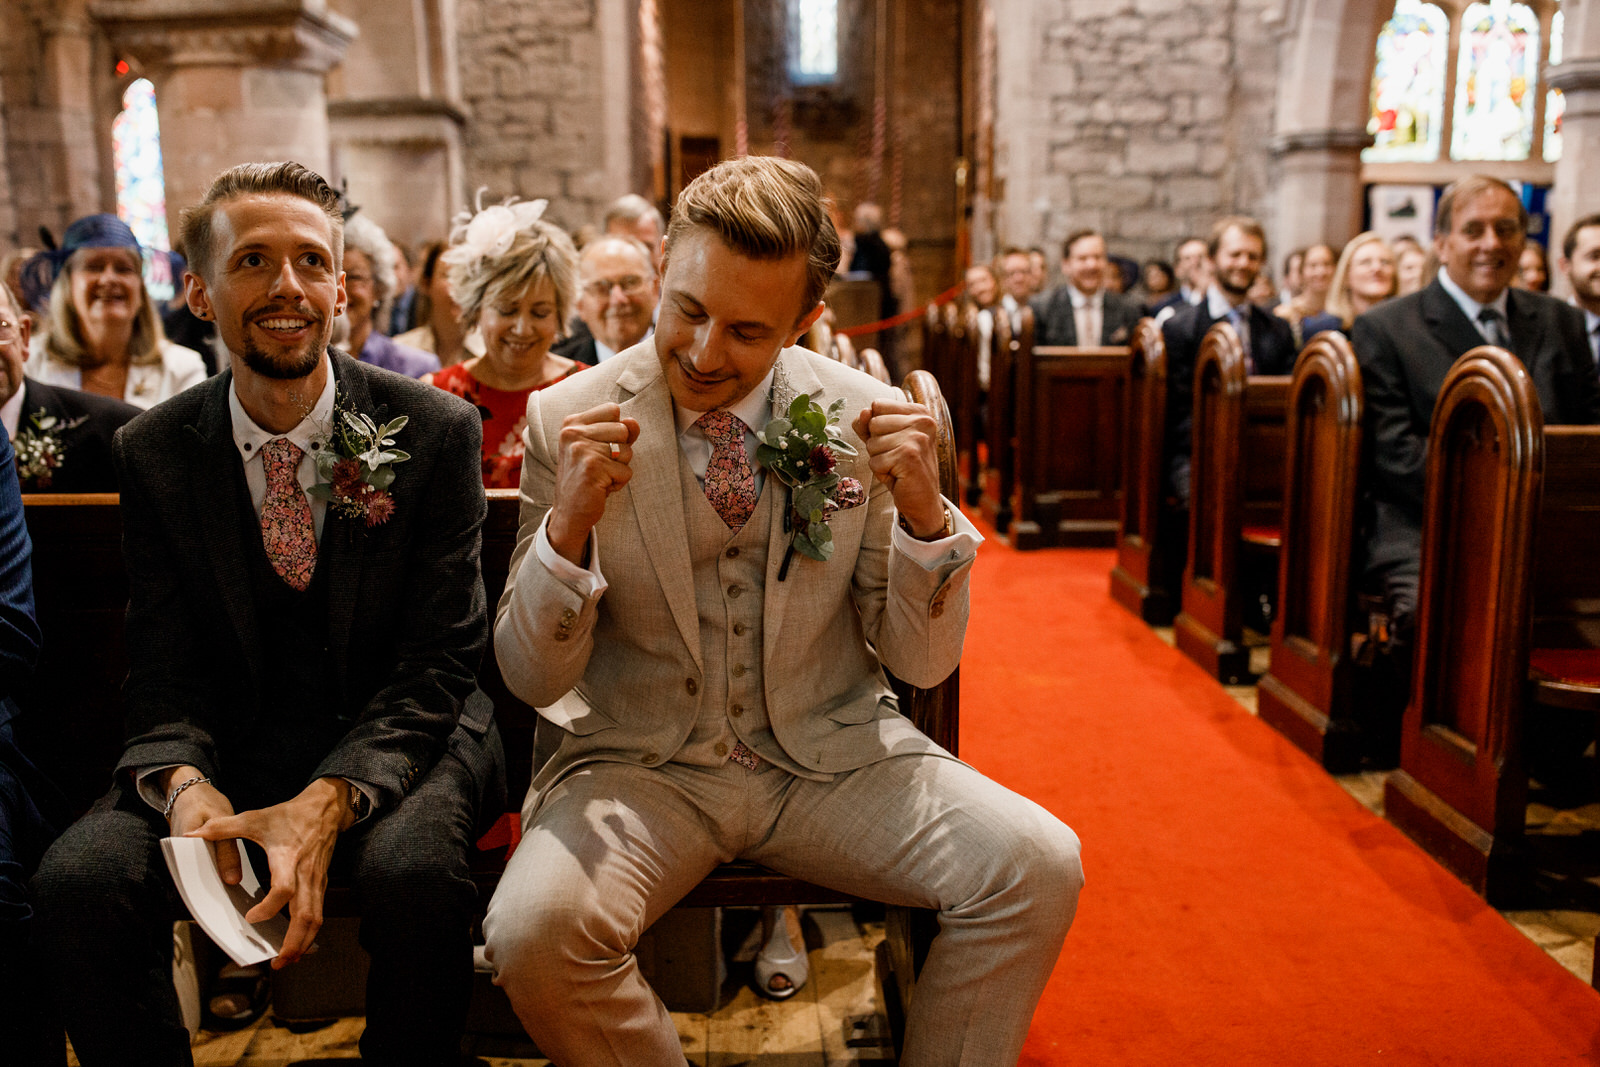 grooming excited about wedding